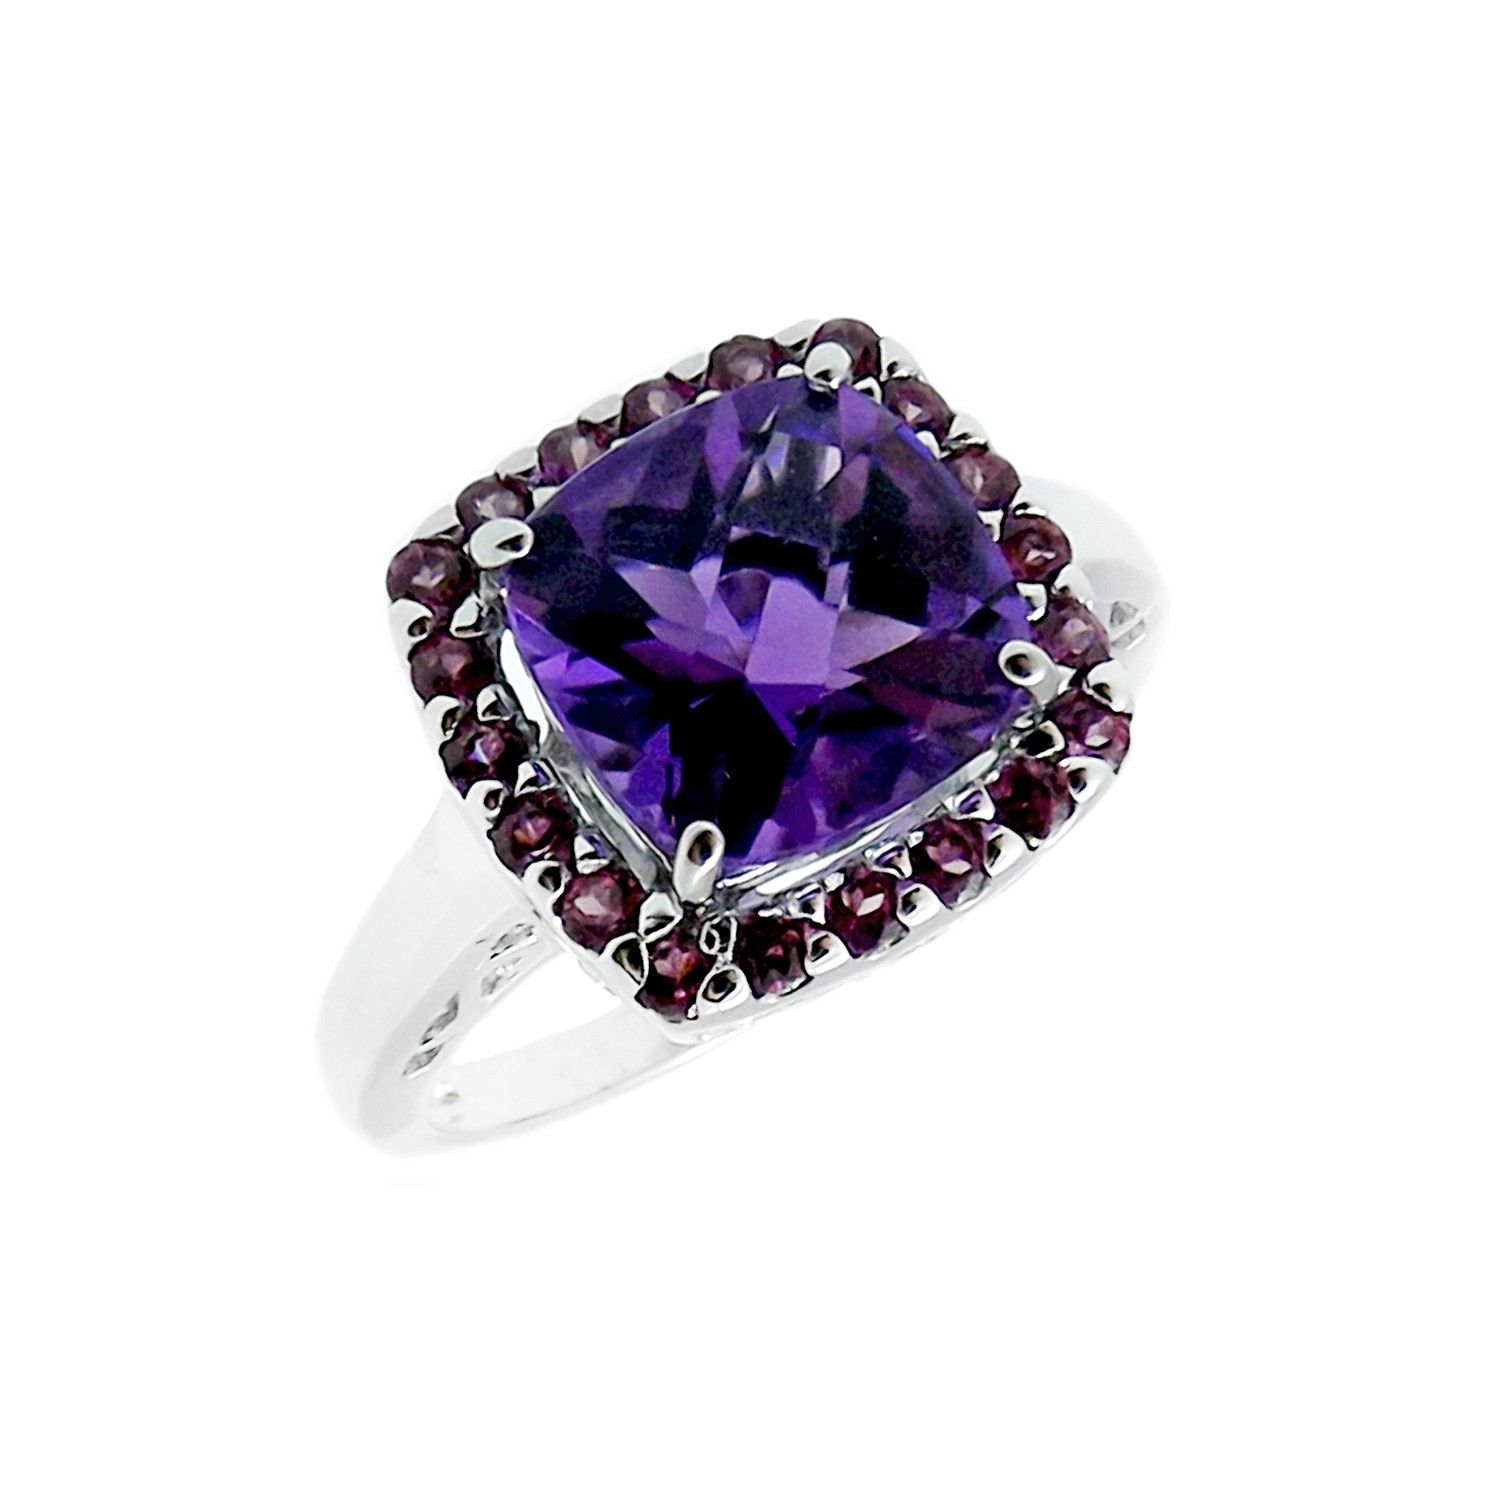 gems purple com avant blue gem gemstone mineral change search avantgems products garnet color